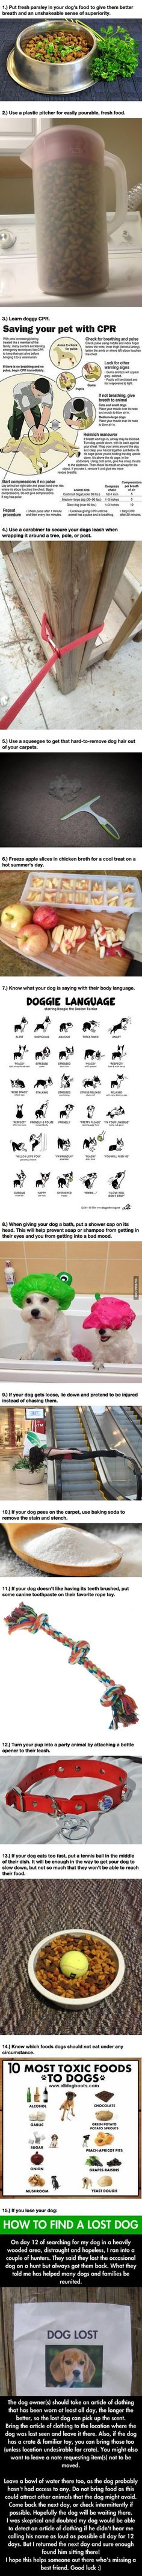 Fur baby tips. for the future pup